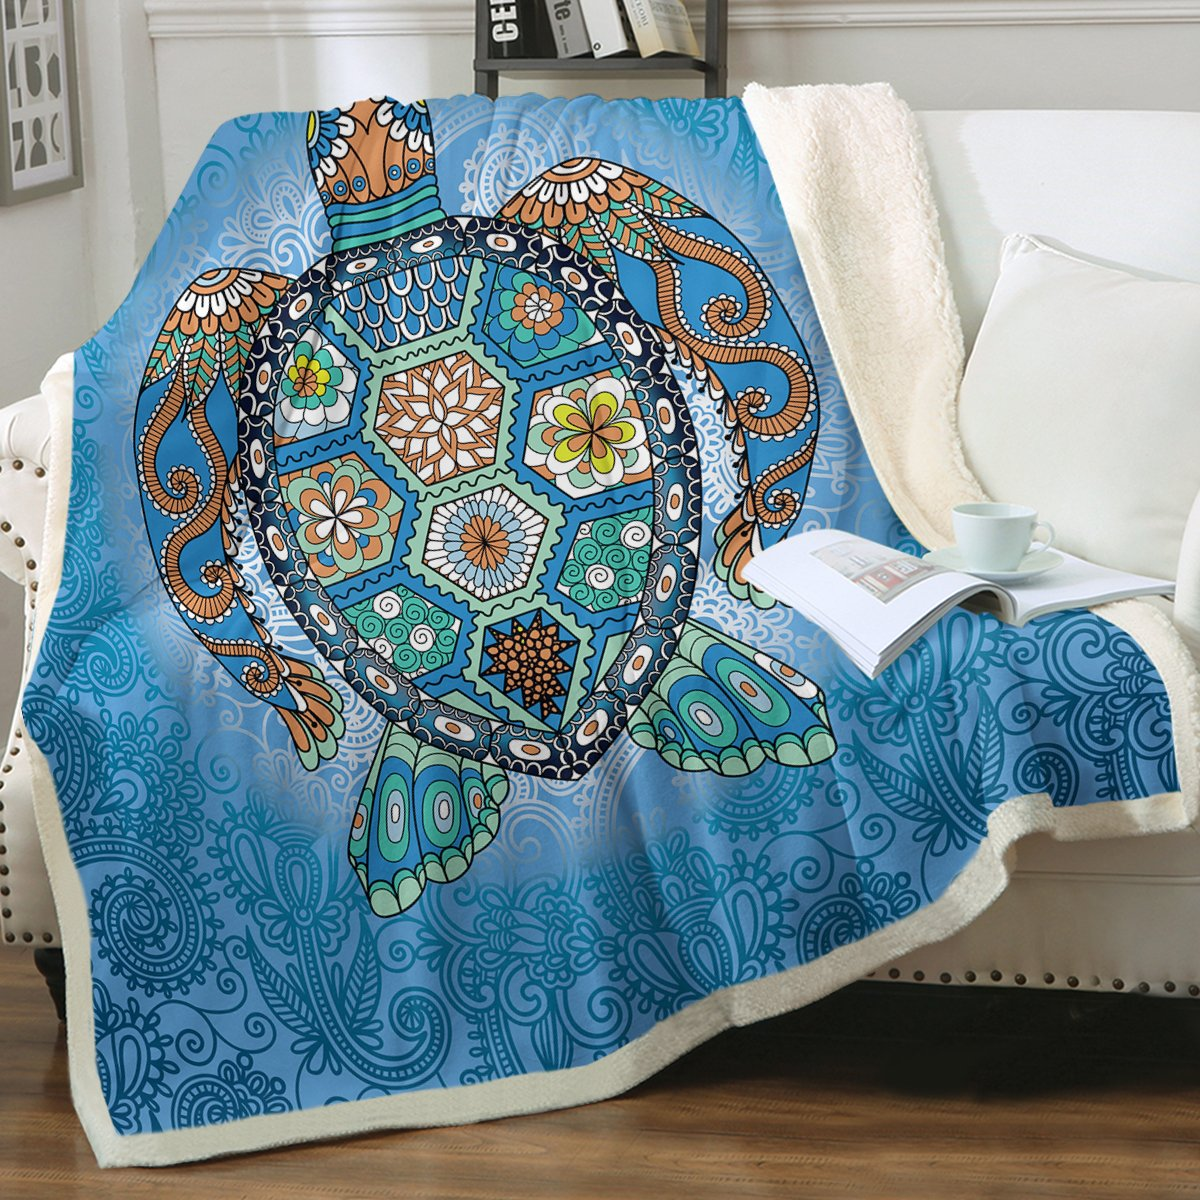 The Turtle Totem Soft Sherpa Blanket-Coastal Passion